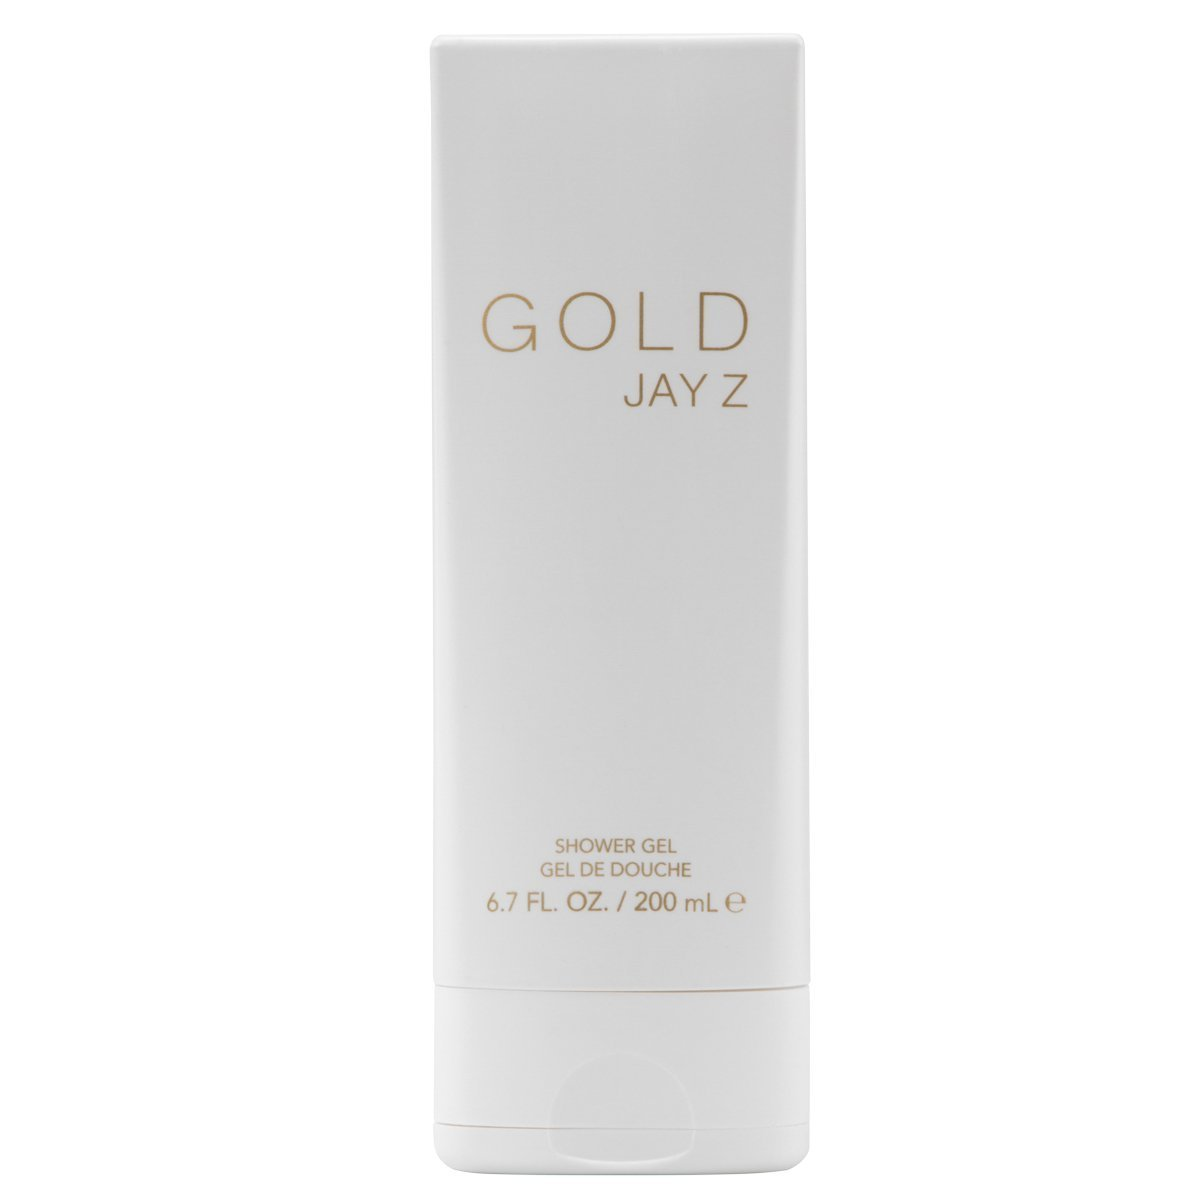 Gold Jay Z Shower Gel, 6.7 Ounce